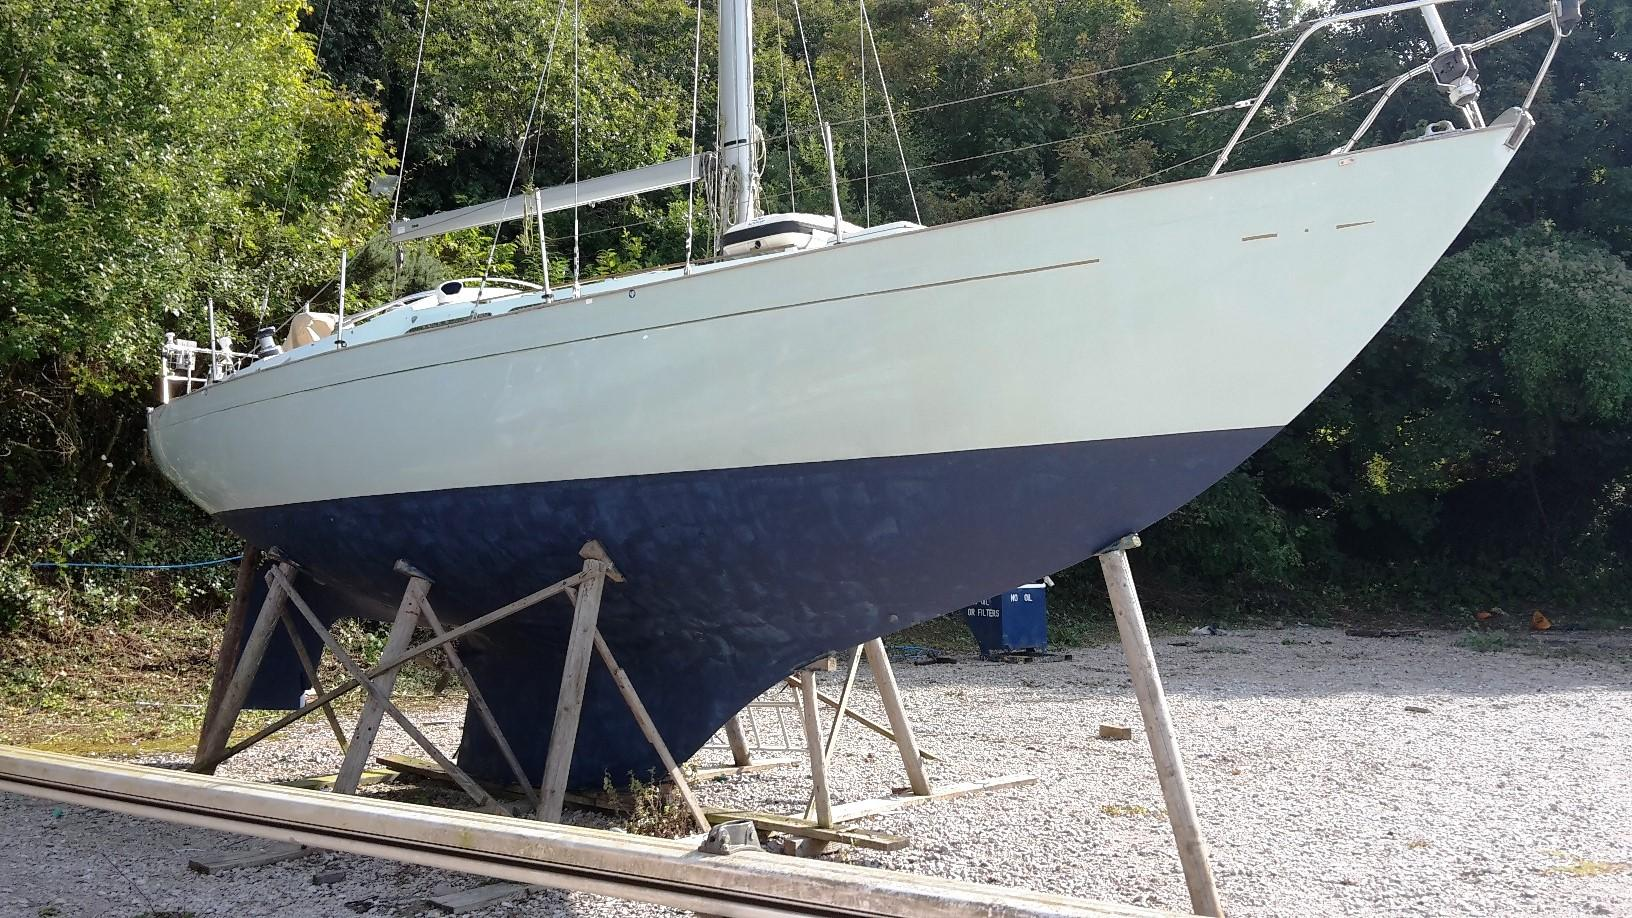 1973 Nicholson 35 Sail New And Used Boats For Sale Www